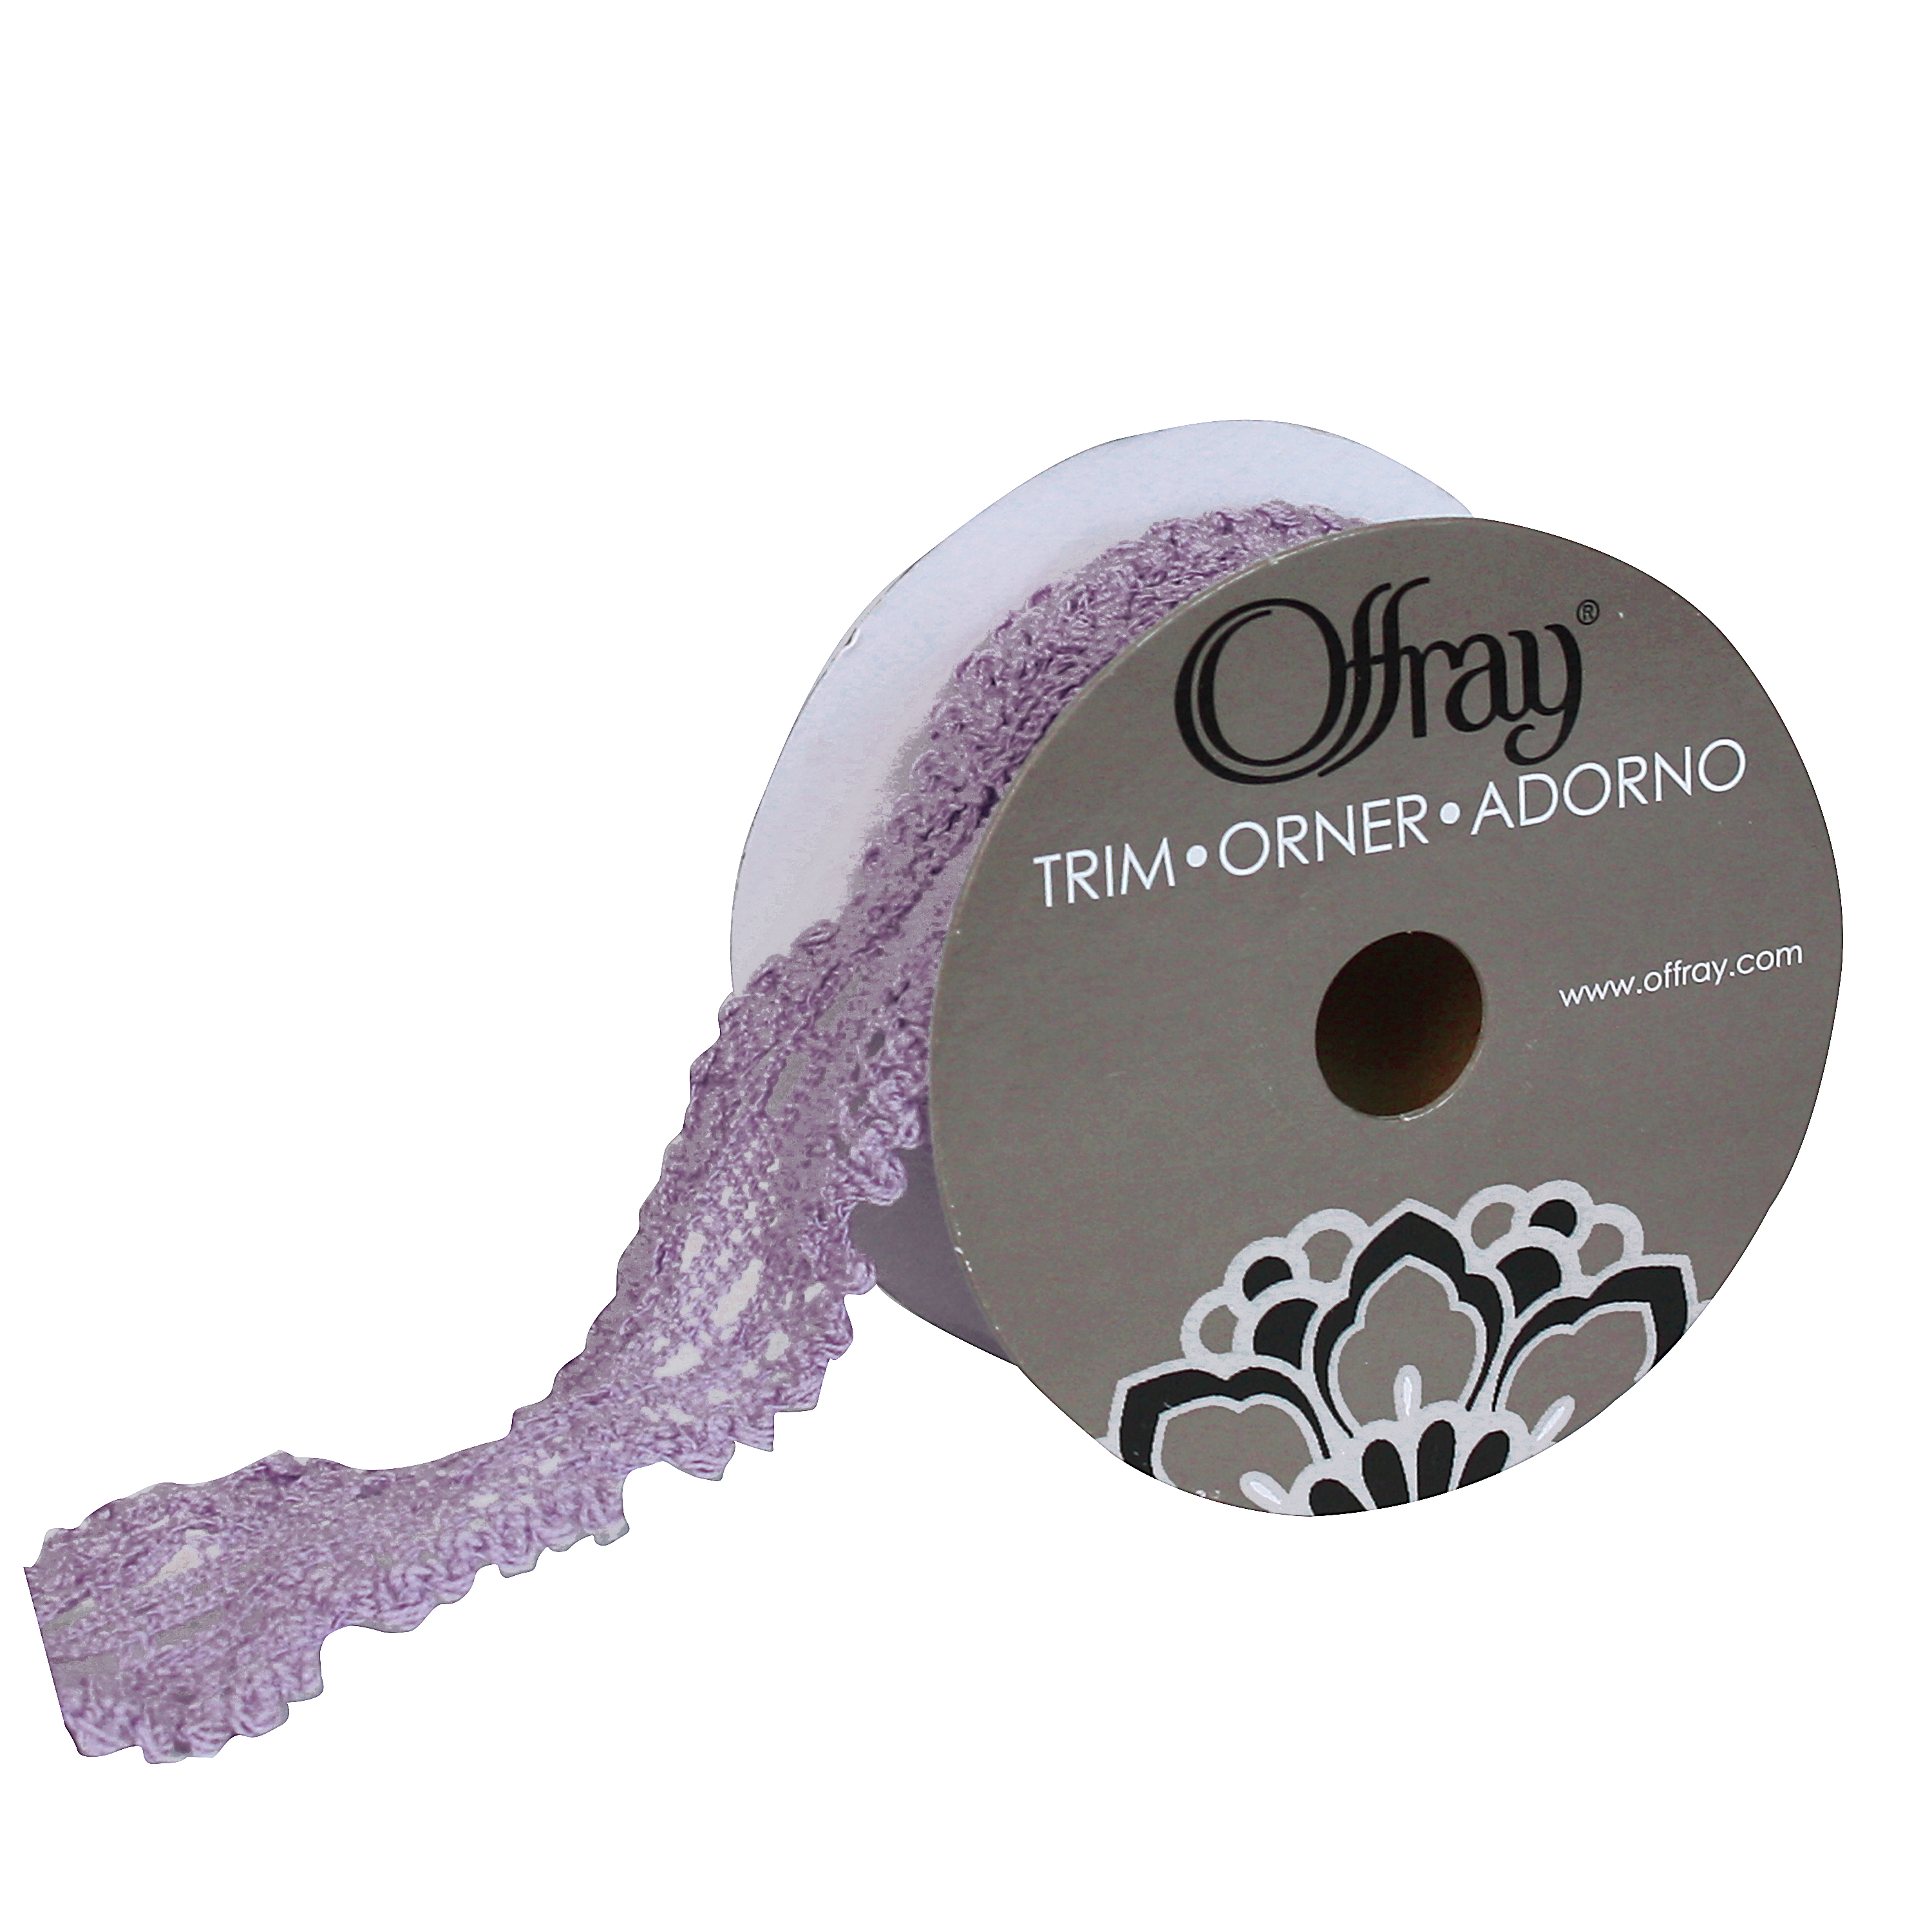 OFFRAY TRIM PURPLE VENICE LACE 1.5 INCHES X 3 YARDS